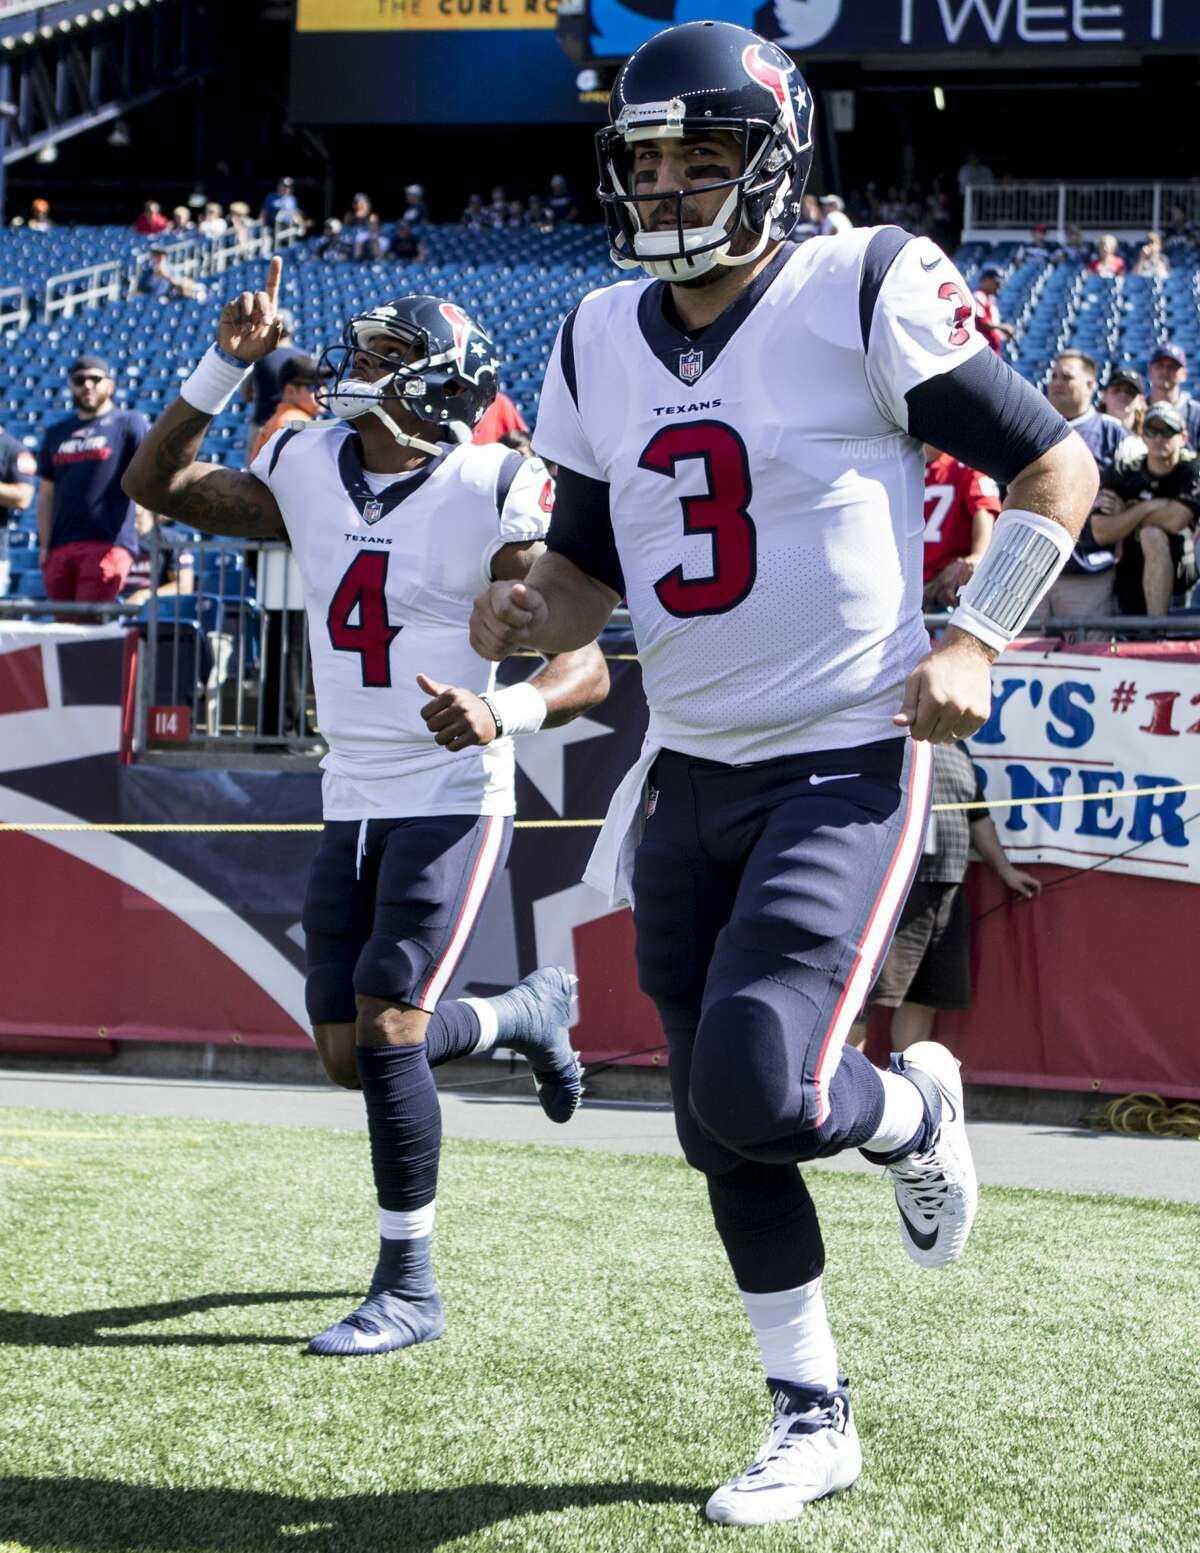 Houston Texans quarterbacks Deshaun Watson (4) and Tom Savage (3) run onto the field before Texans NFL football game againt the New England Patriots at Gillette Stadium on Sunday, Sept. 24, 2017, in Foxbourough, Mass. ( Brett Coomer / Houston Chronicle )